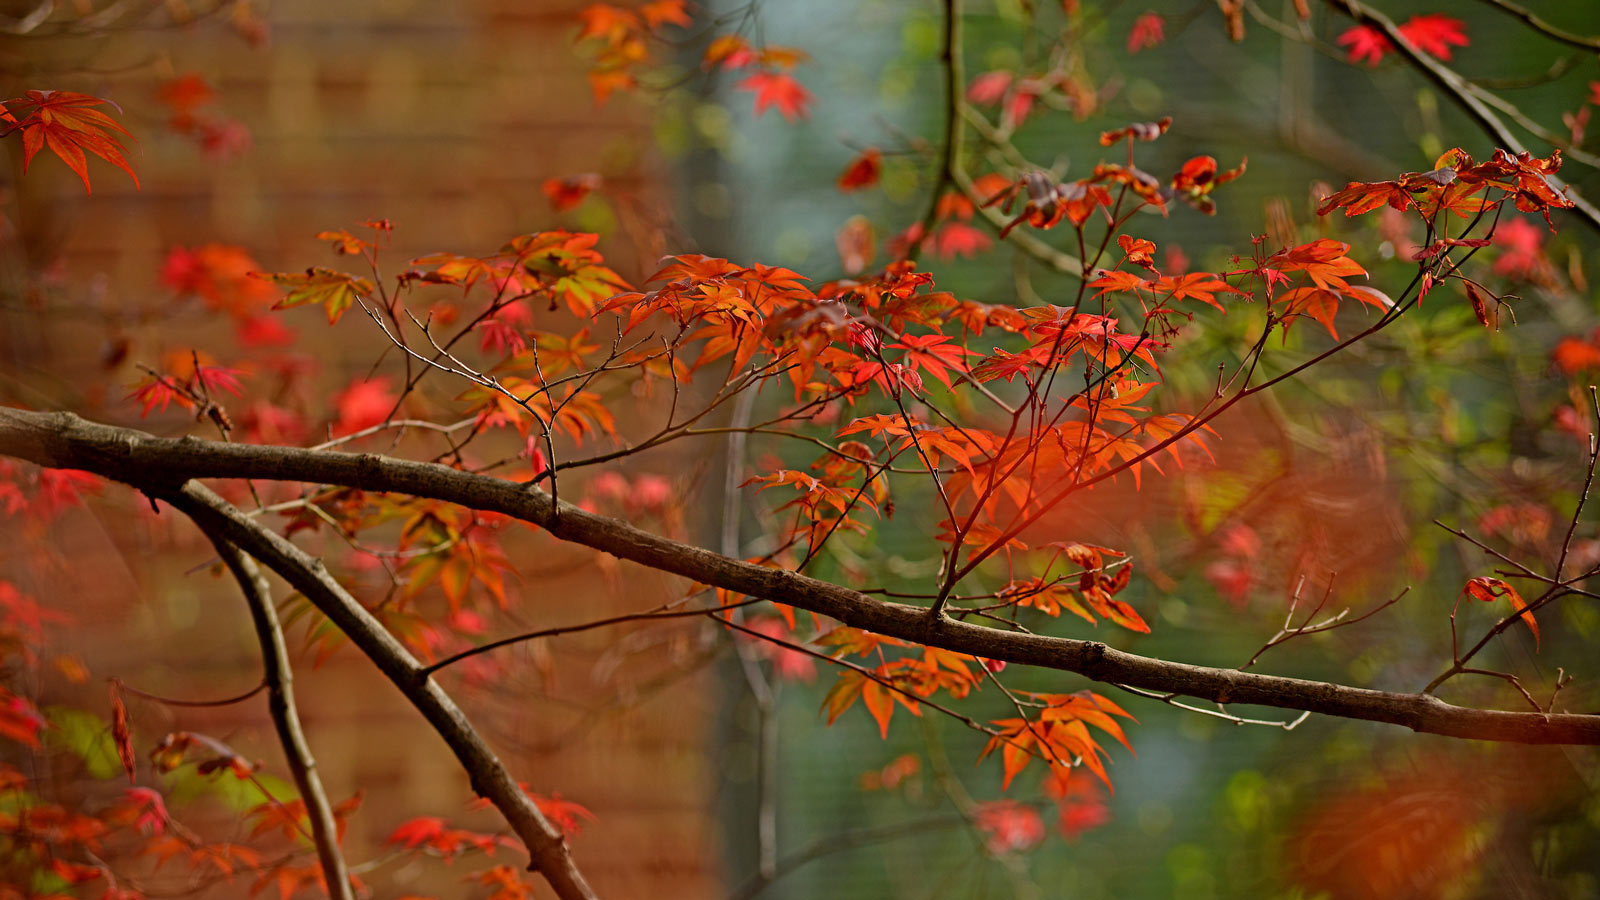 Orange leaves on a Japanese maple tree branch